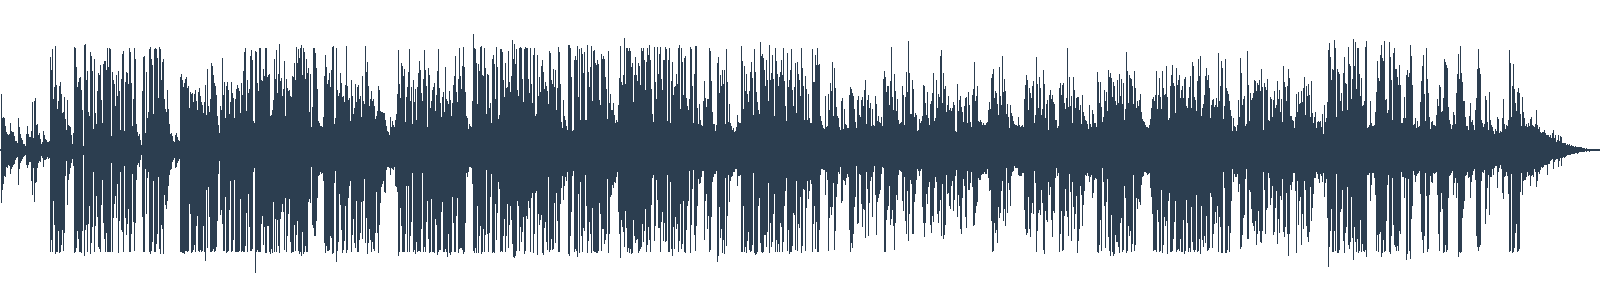 PF2017 waveform